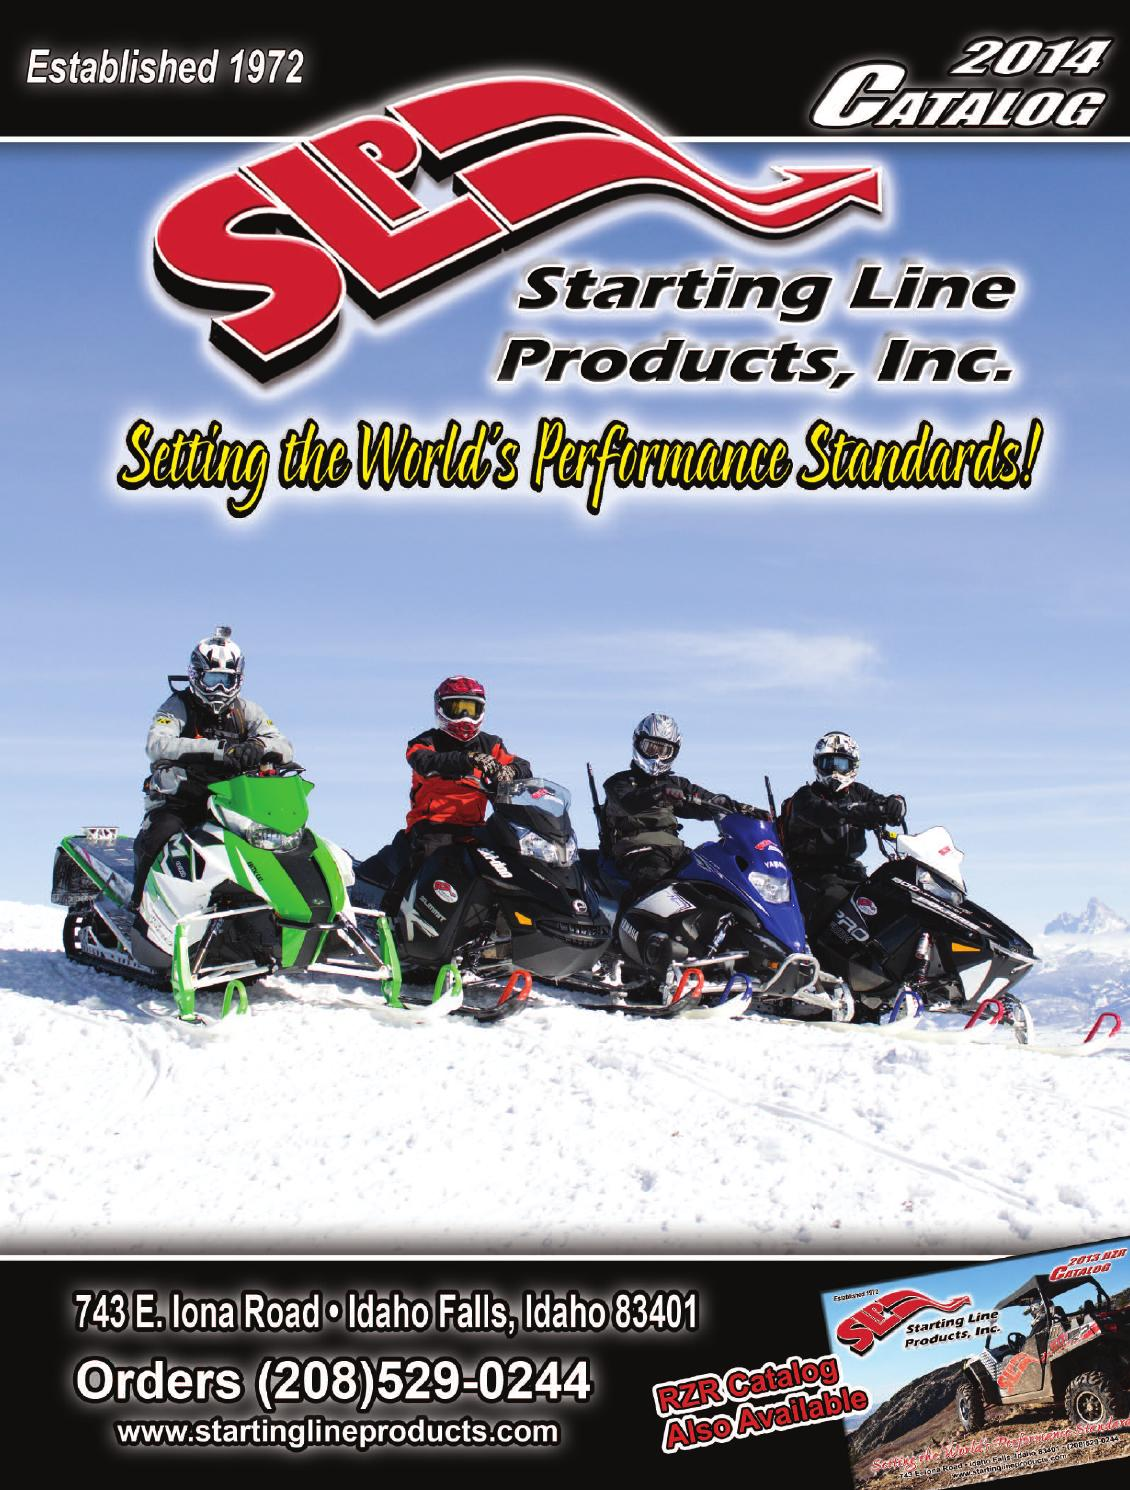 2014 Slp Snow Catalog By Starting Line Products Issuu Honda Cbr600rr Series Slip On Exhaust M 2 Carbon Fiber Canister Hitam